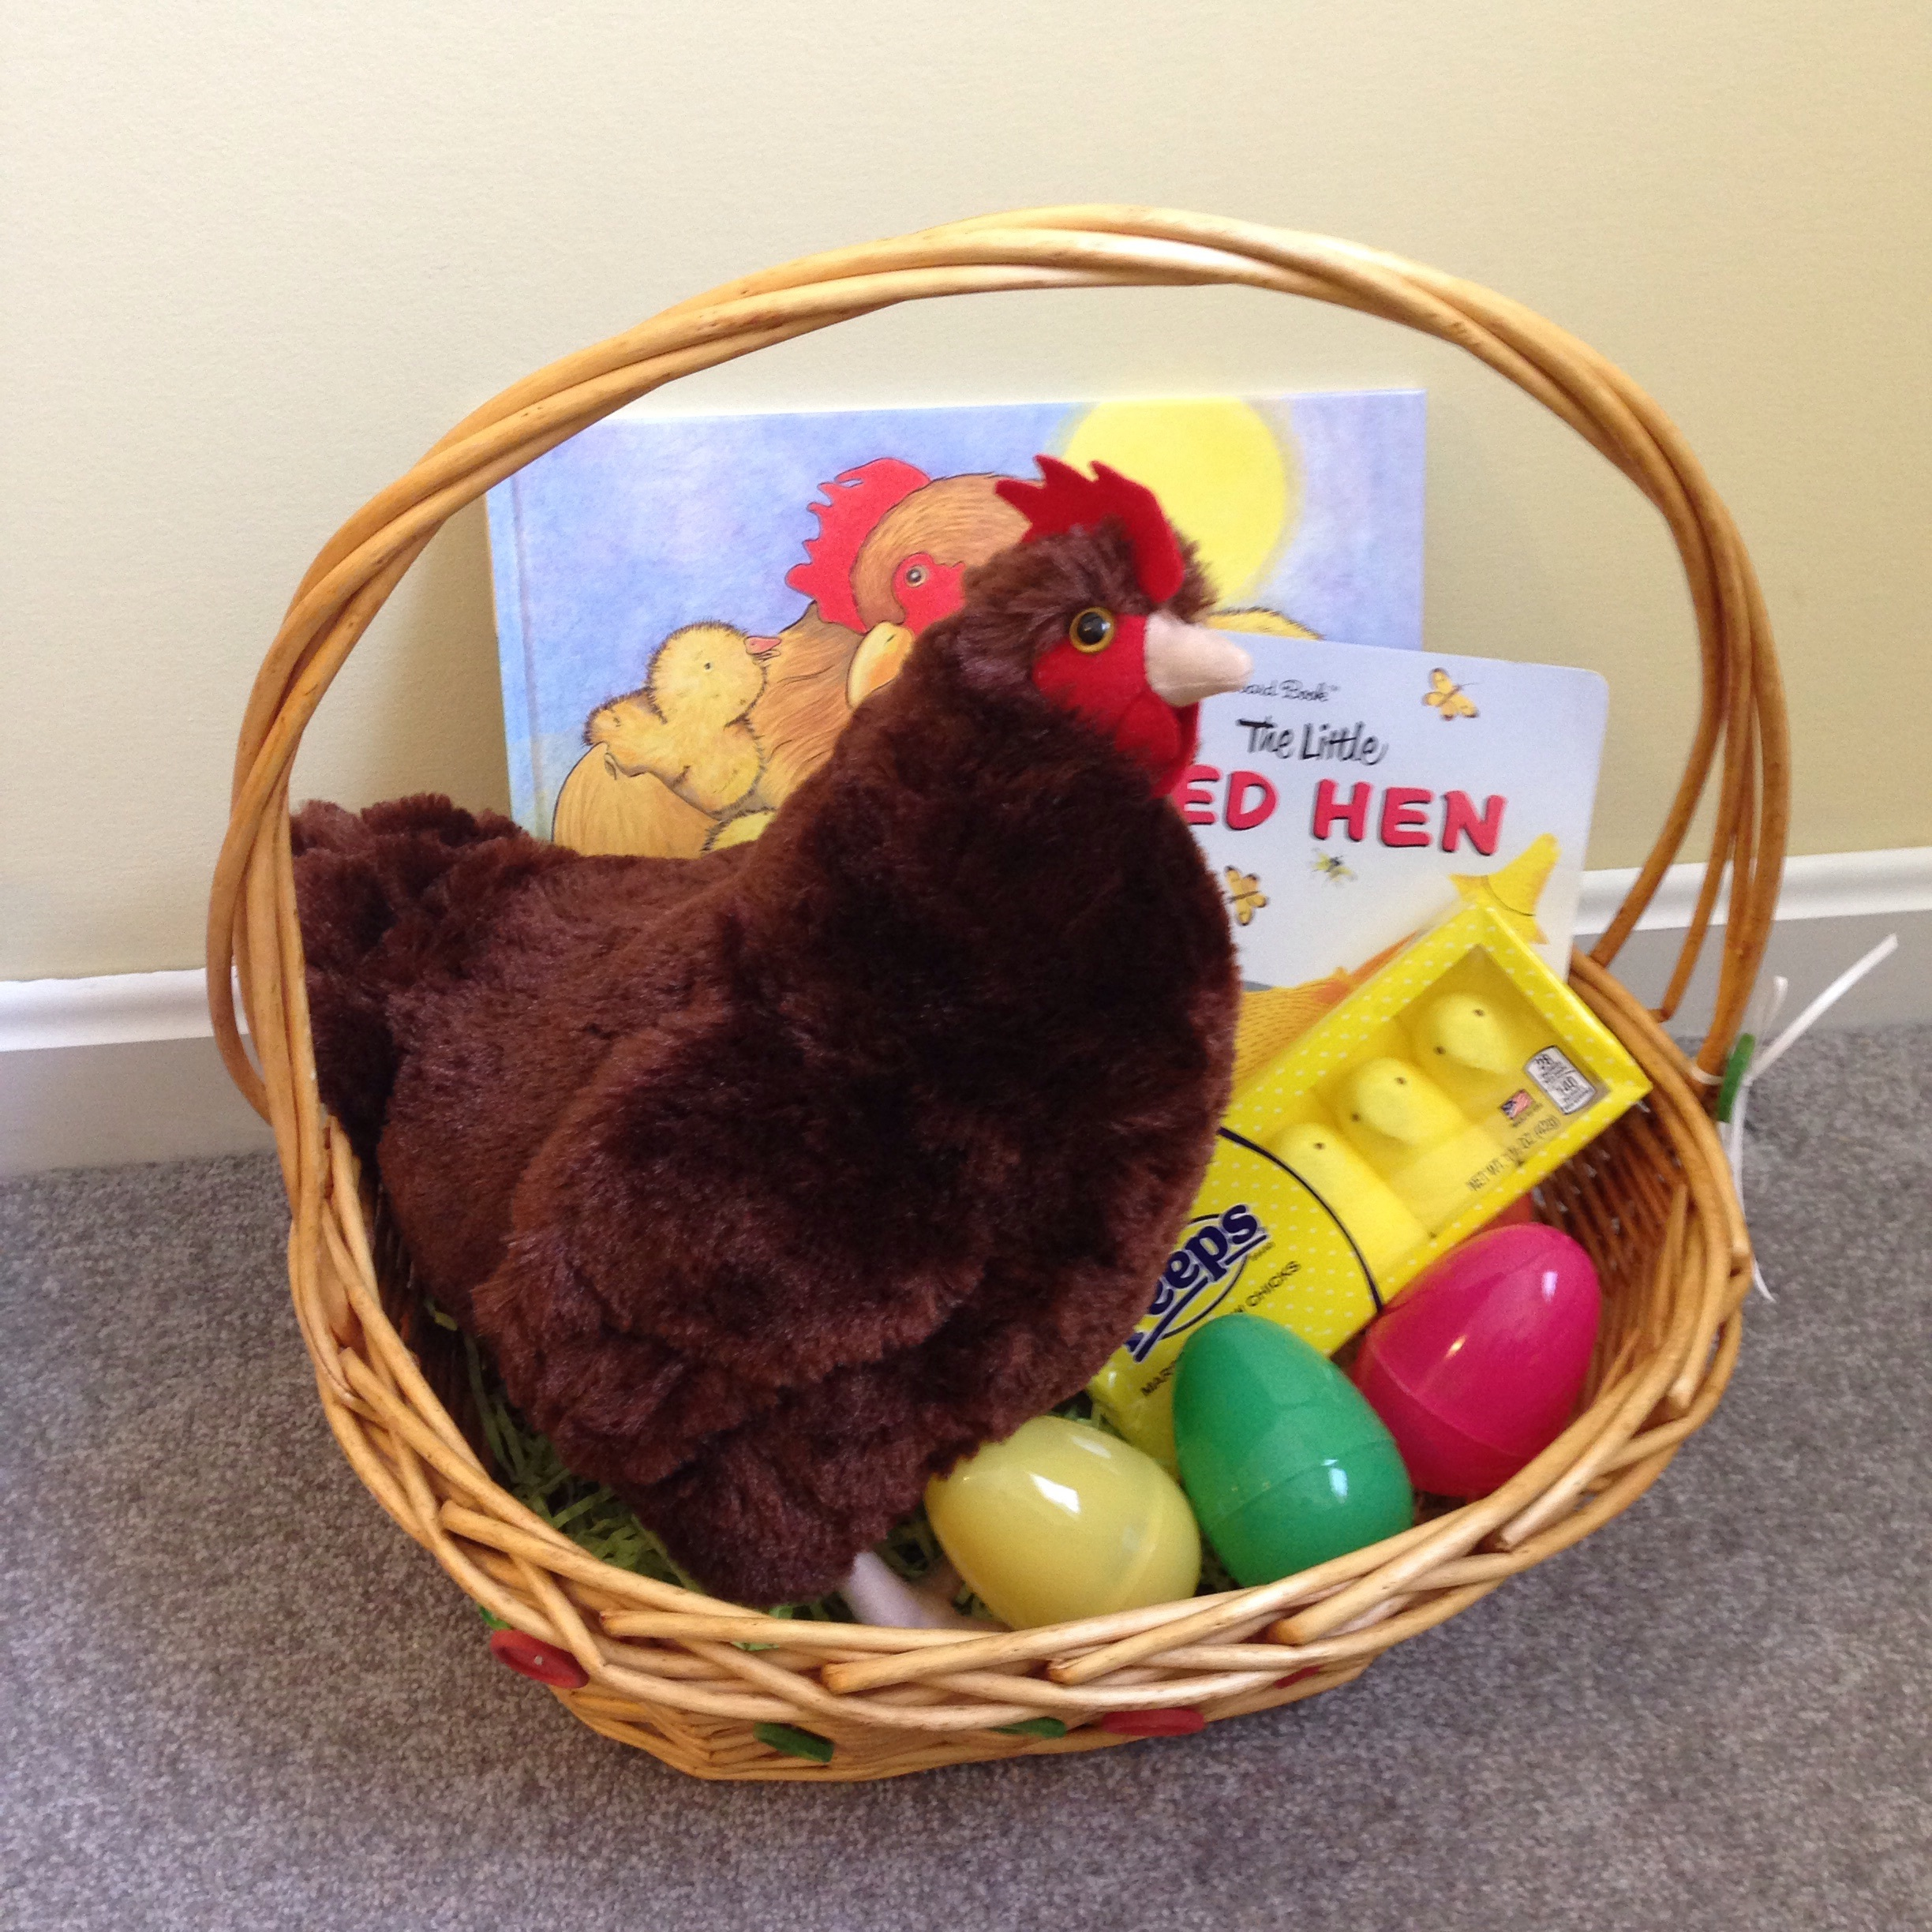 A fun toddler Easter basket theme - chickens!